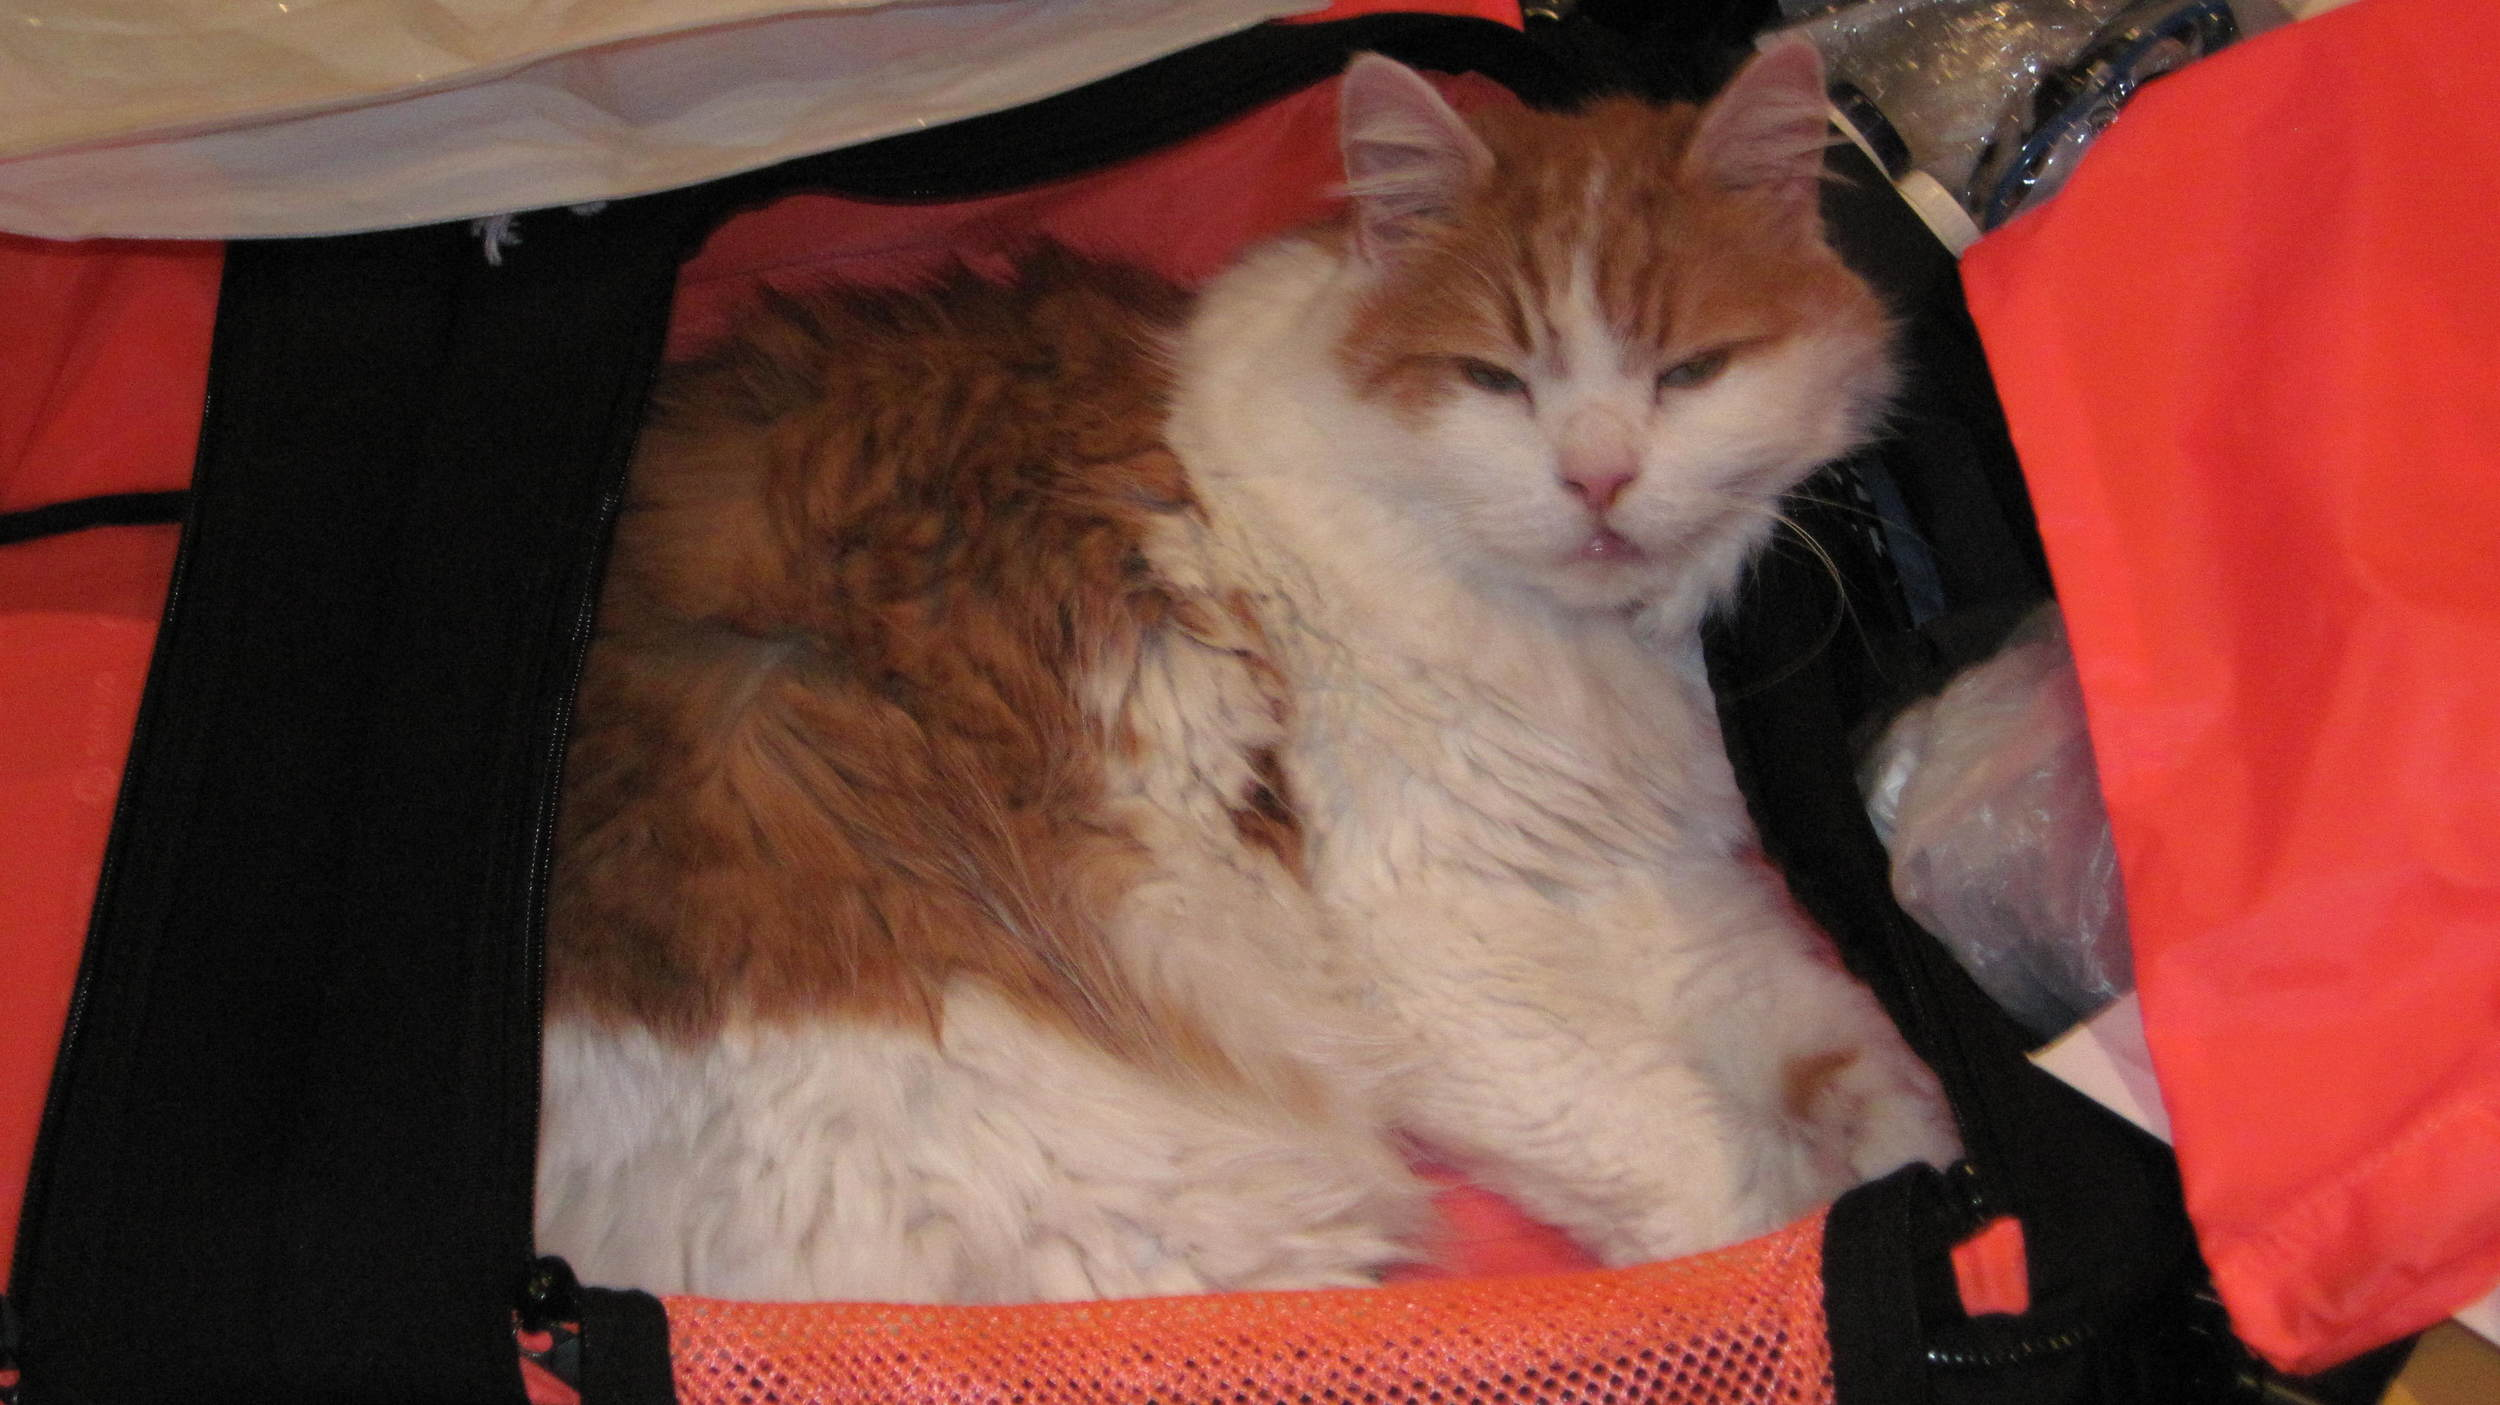 Sneaking into the suitcase we were packing. Assumed he would be joining us.